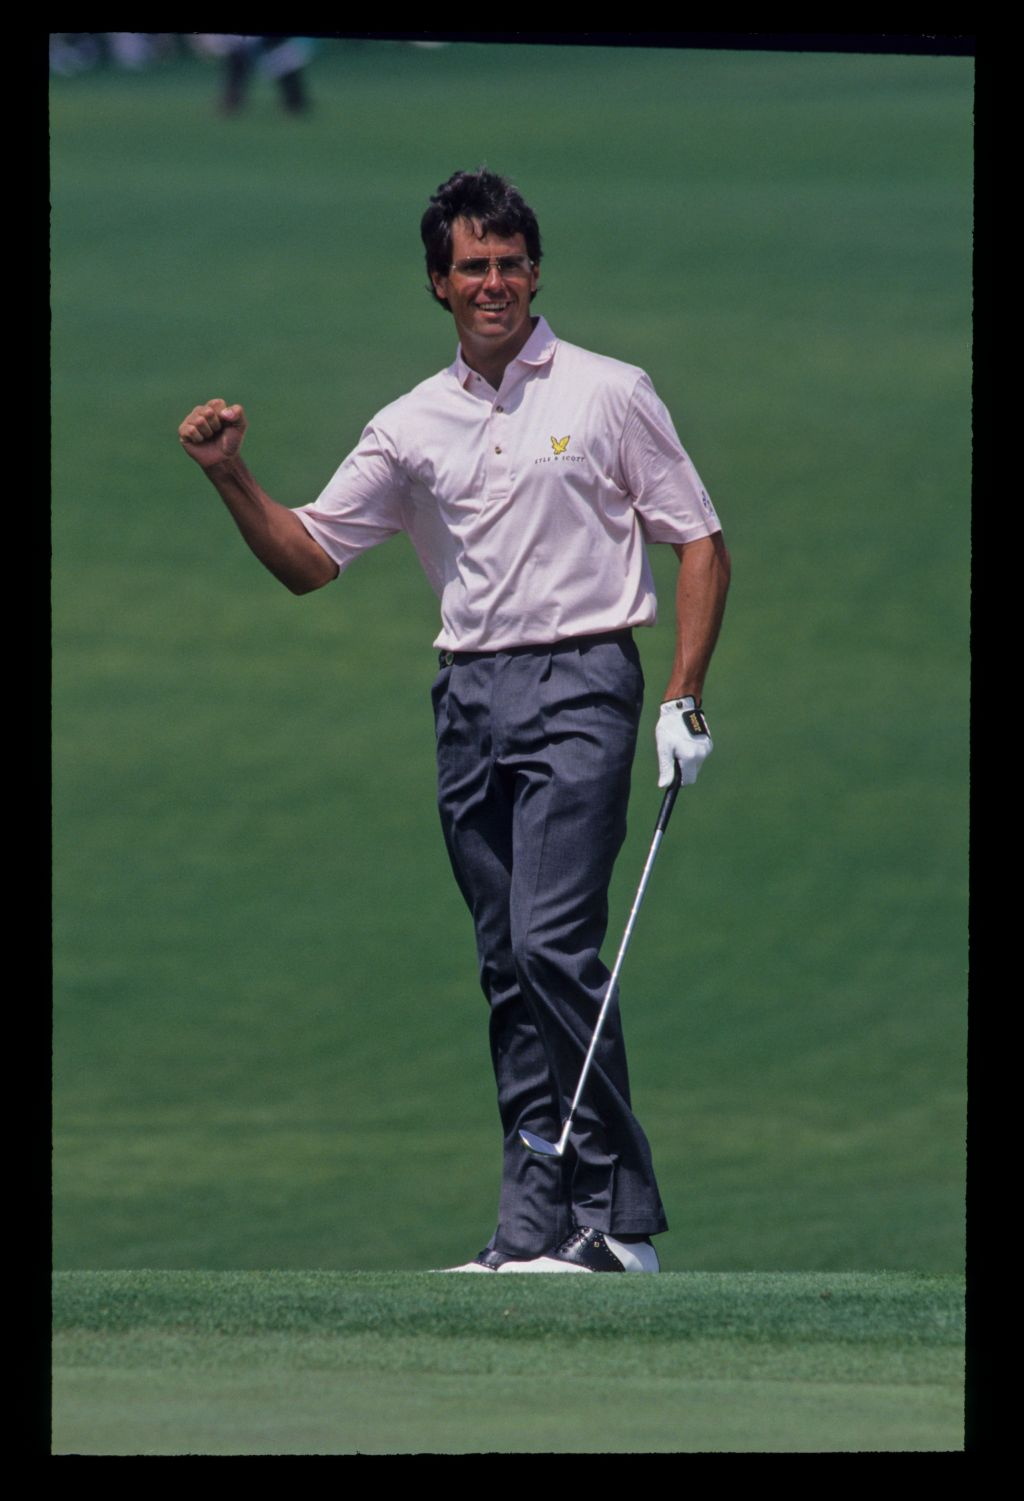 Ian Baker Finch giving a clenched fist salute after chipping in during the 1992 Masters